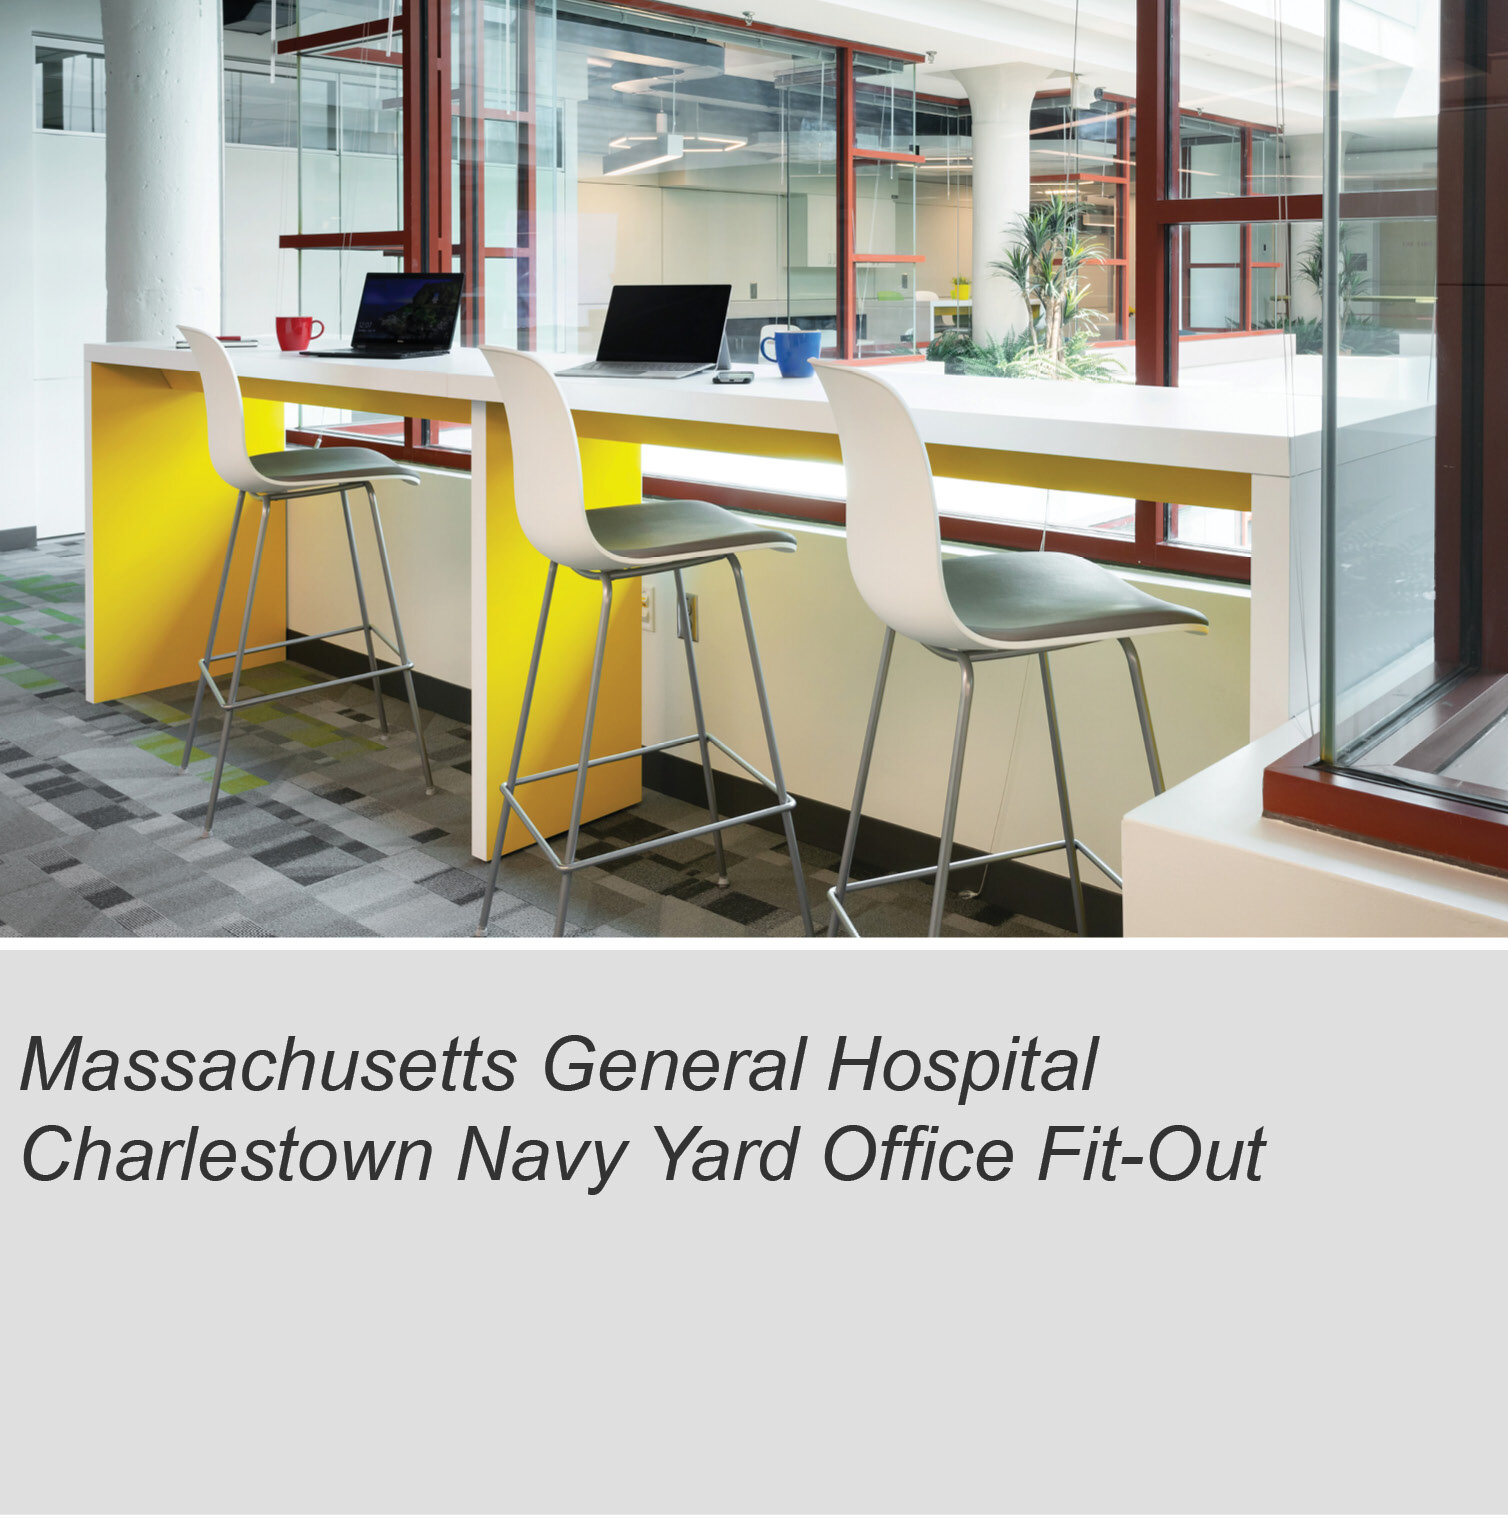 MGH Charlestown Navy Yard Fit Out